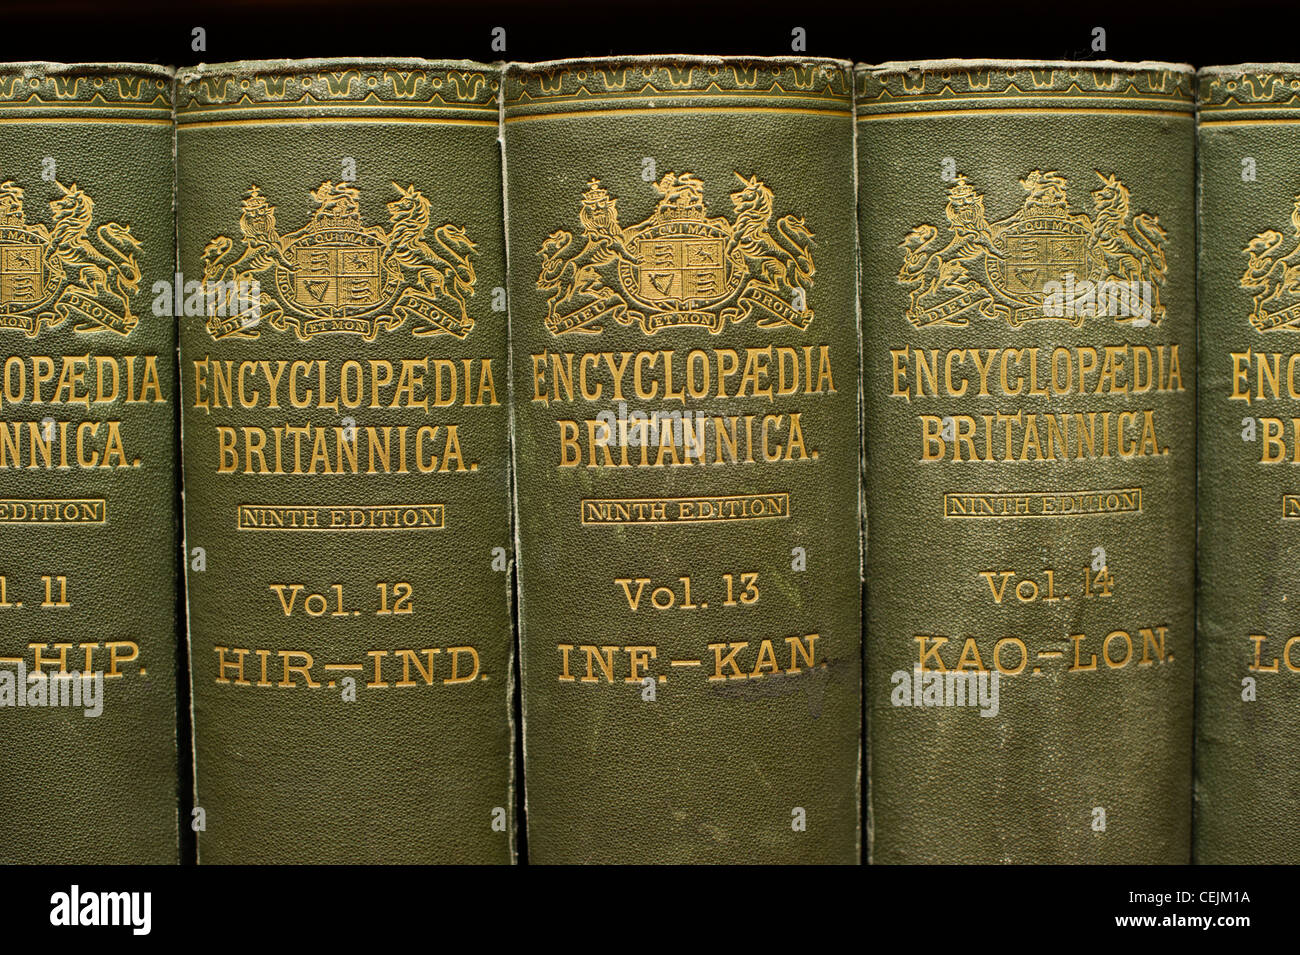 Green leather bound Encyclopaedia Britannica books - Stock Image